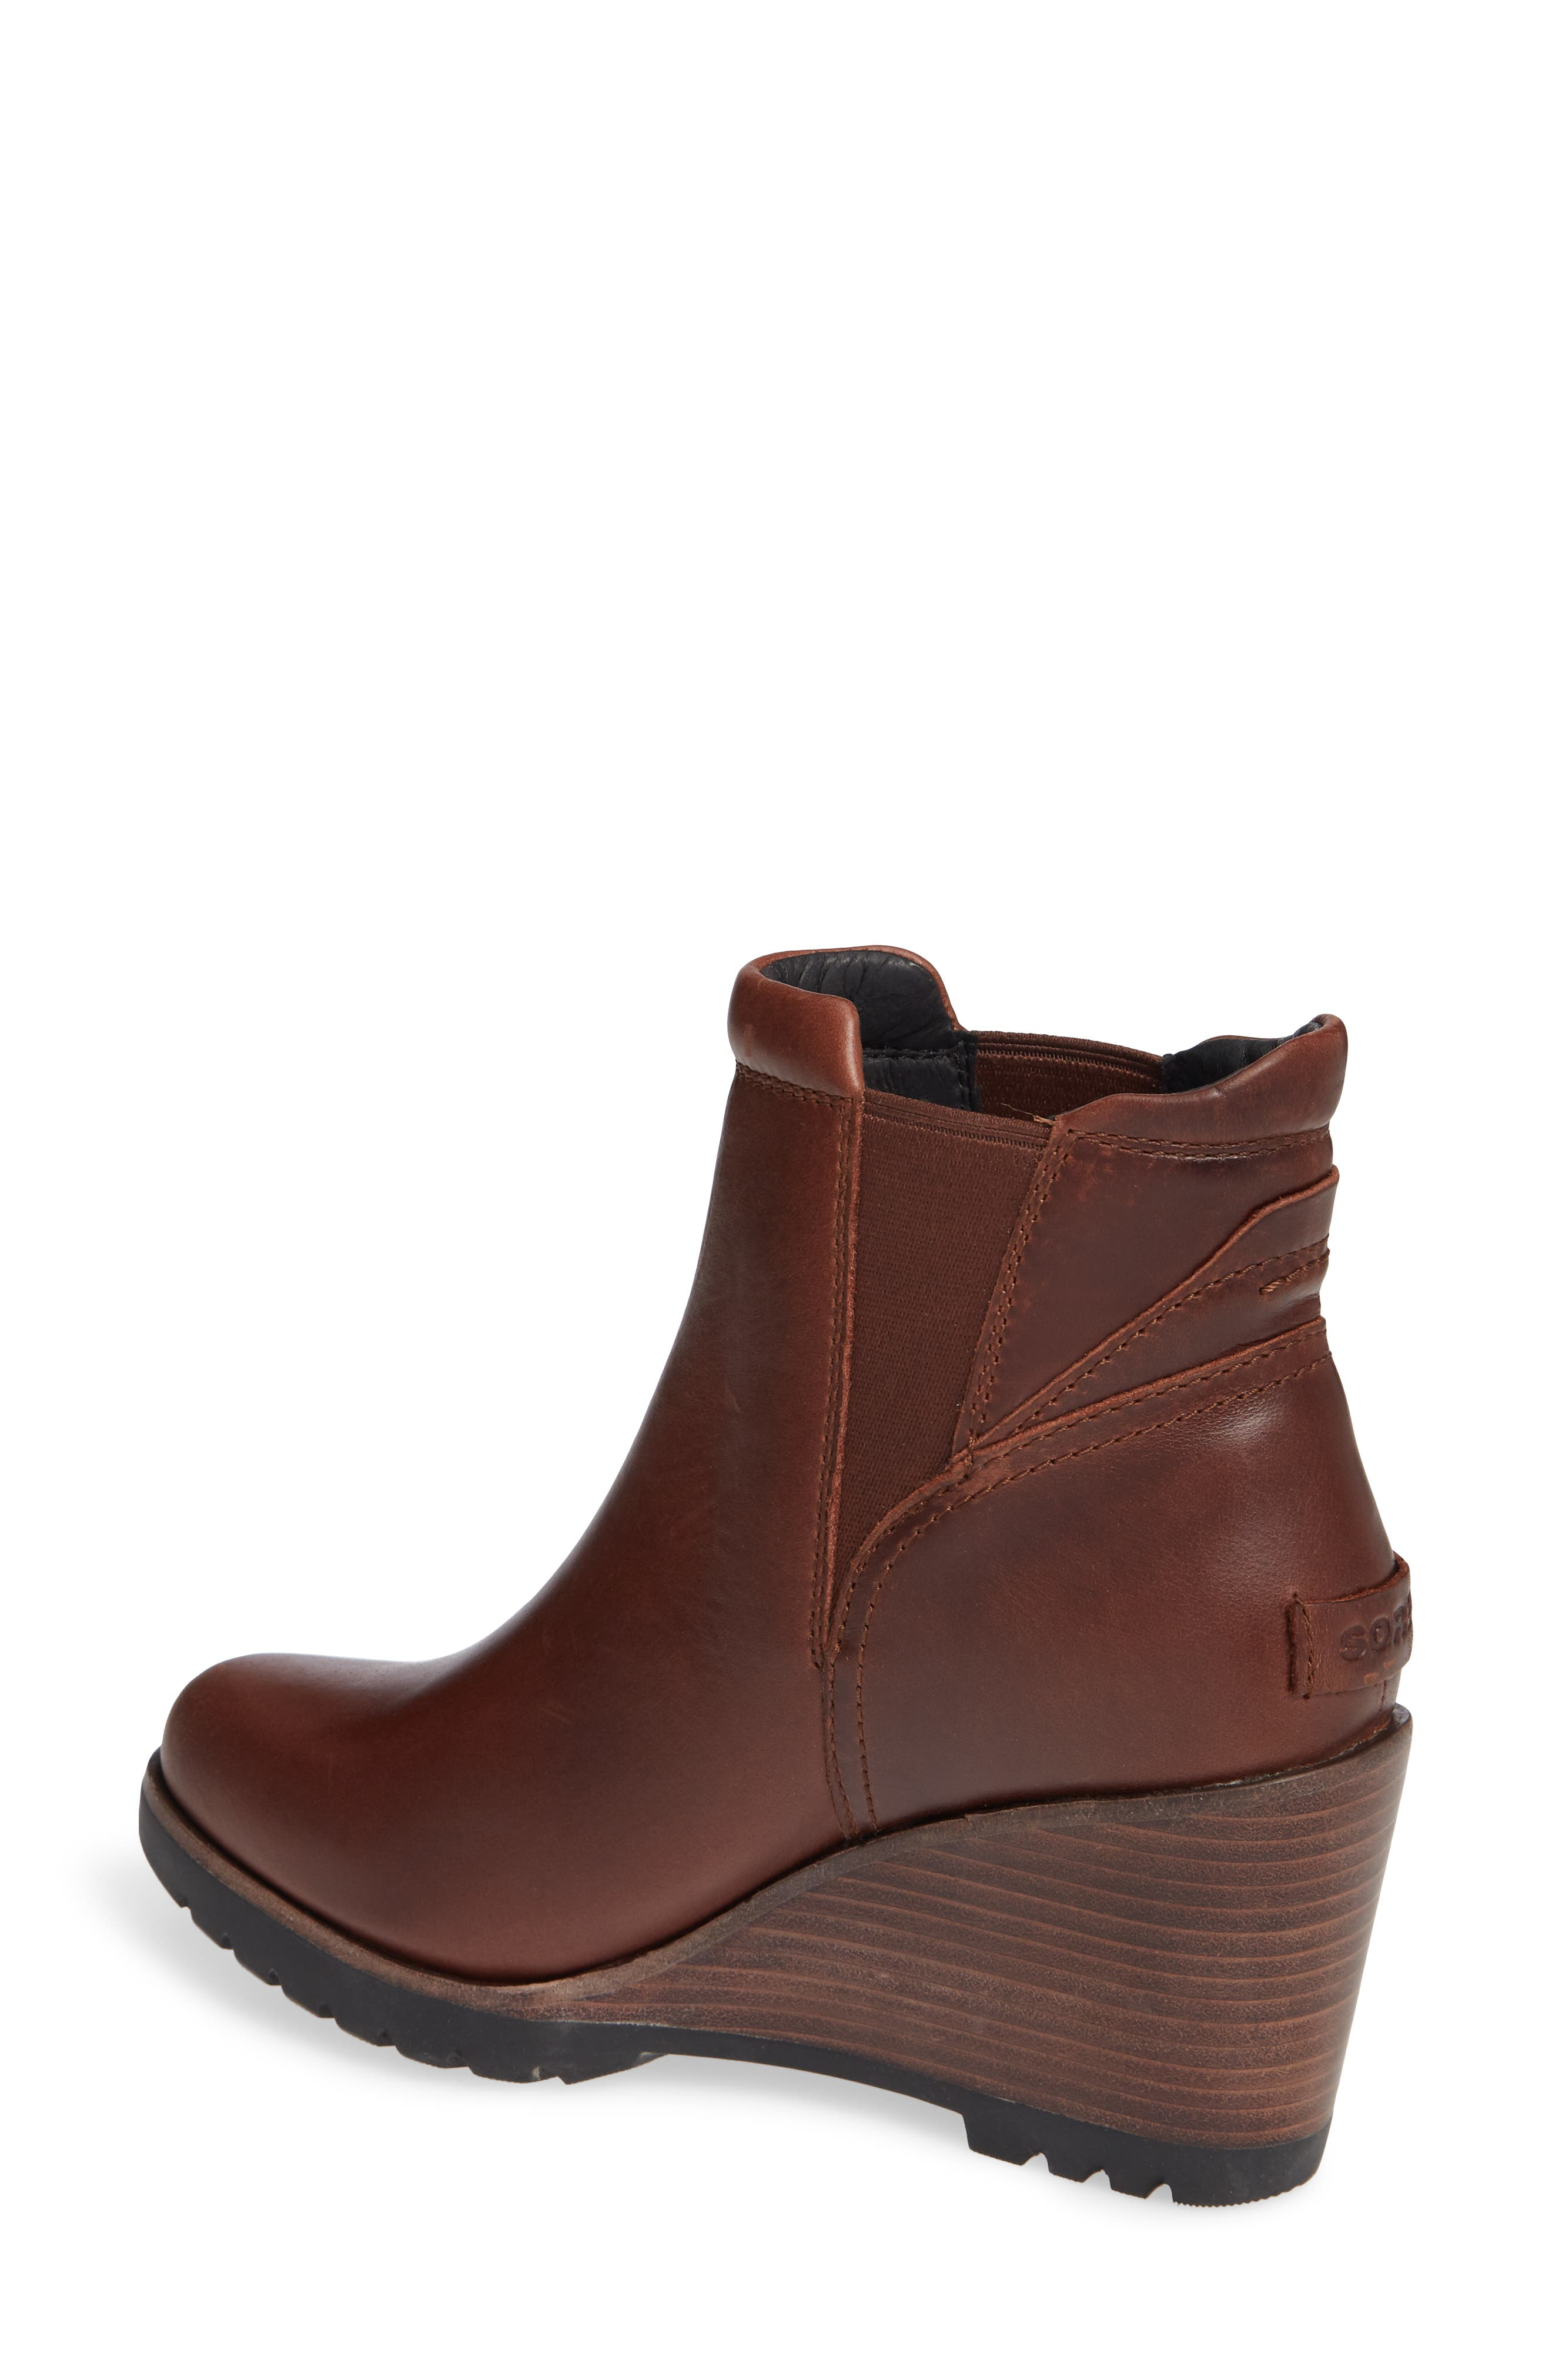 After Hours Chelsea Waterproof Boot,                             Alternate thumbnail 2, color,                             200